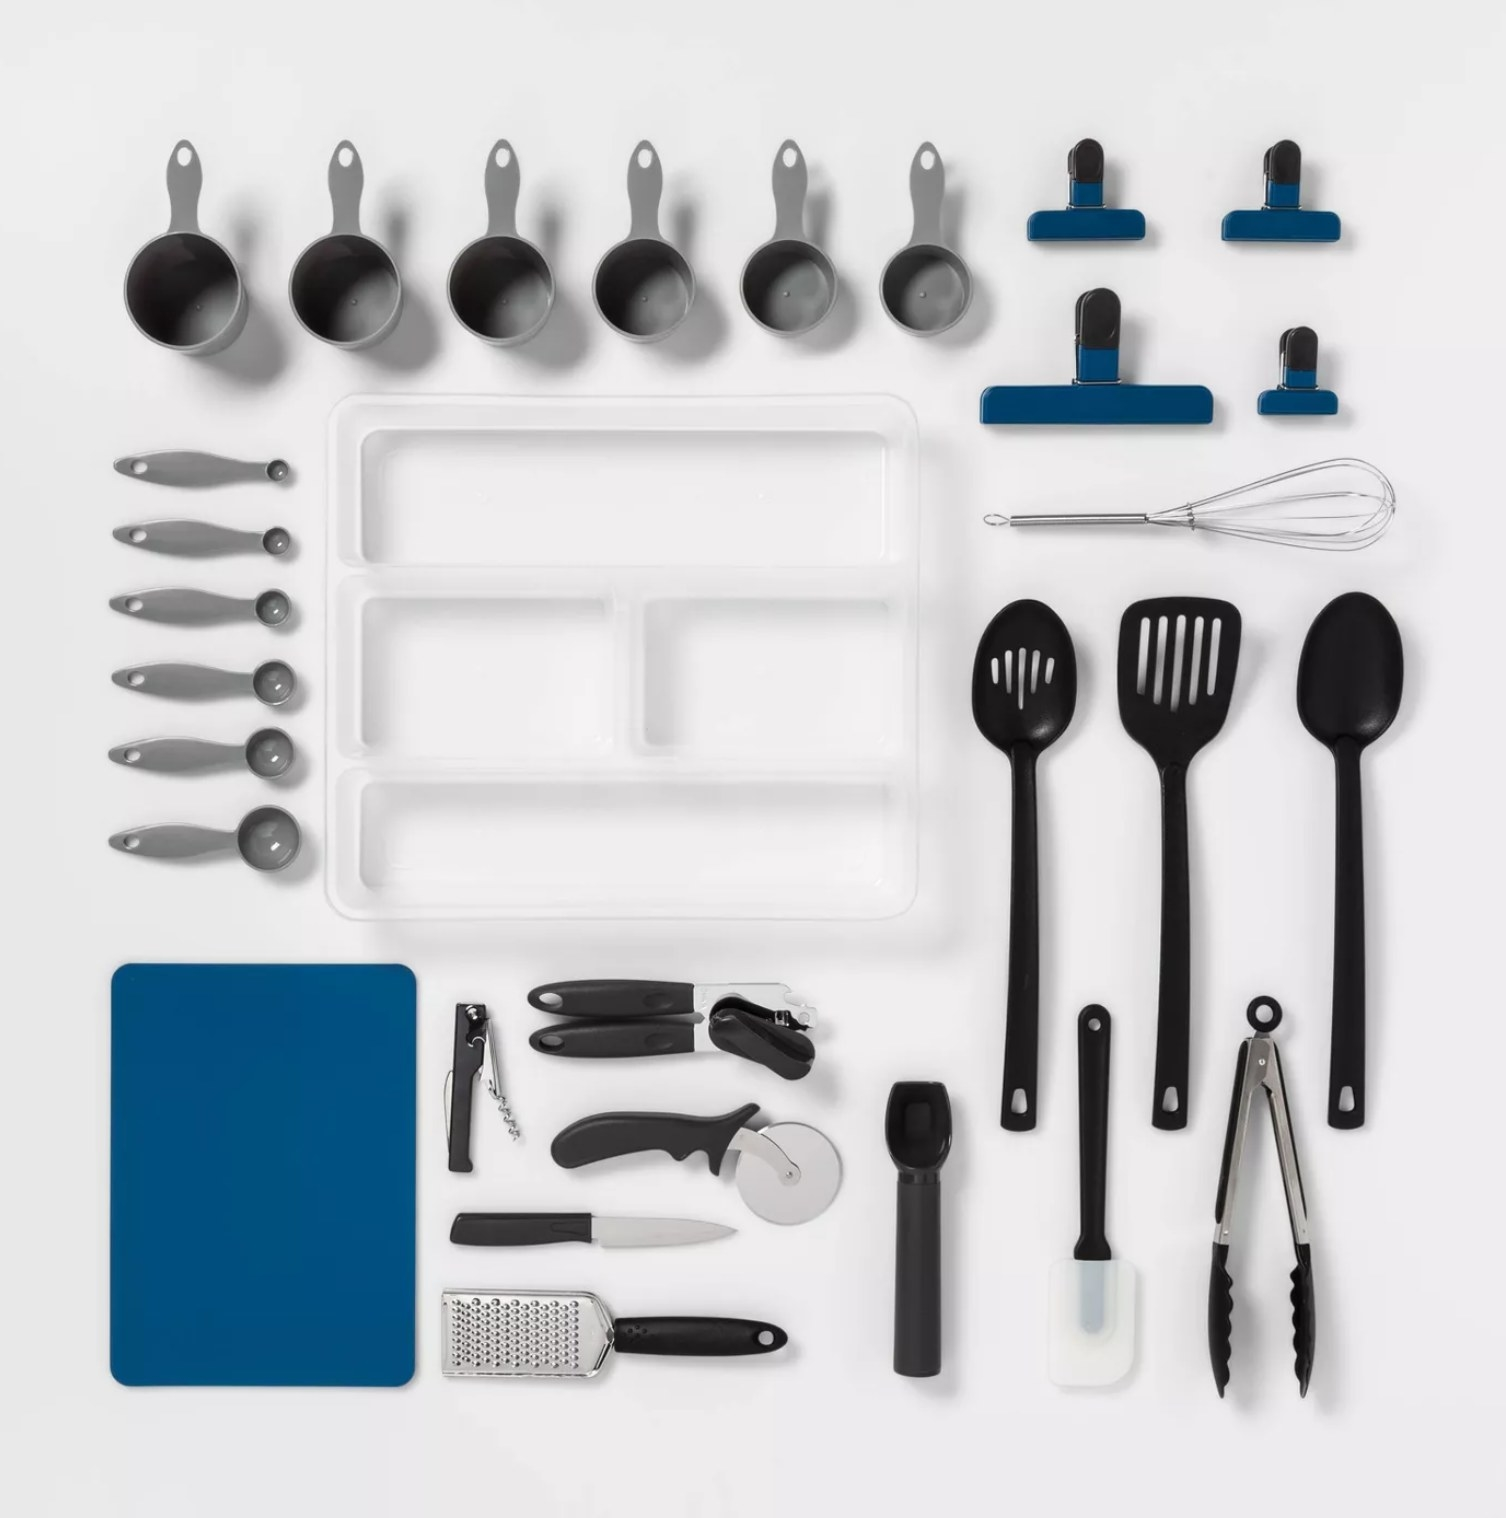 the whole kitchen utensil set laid out